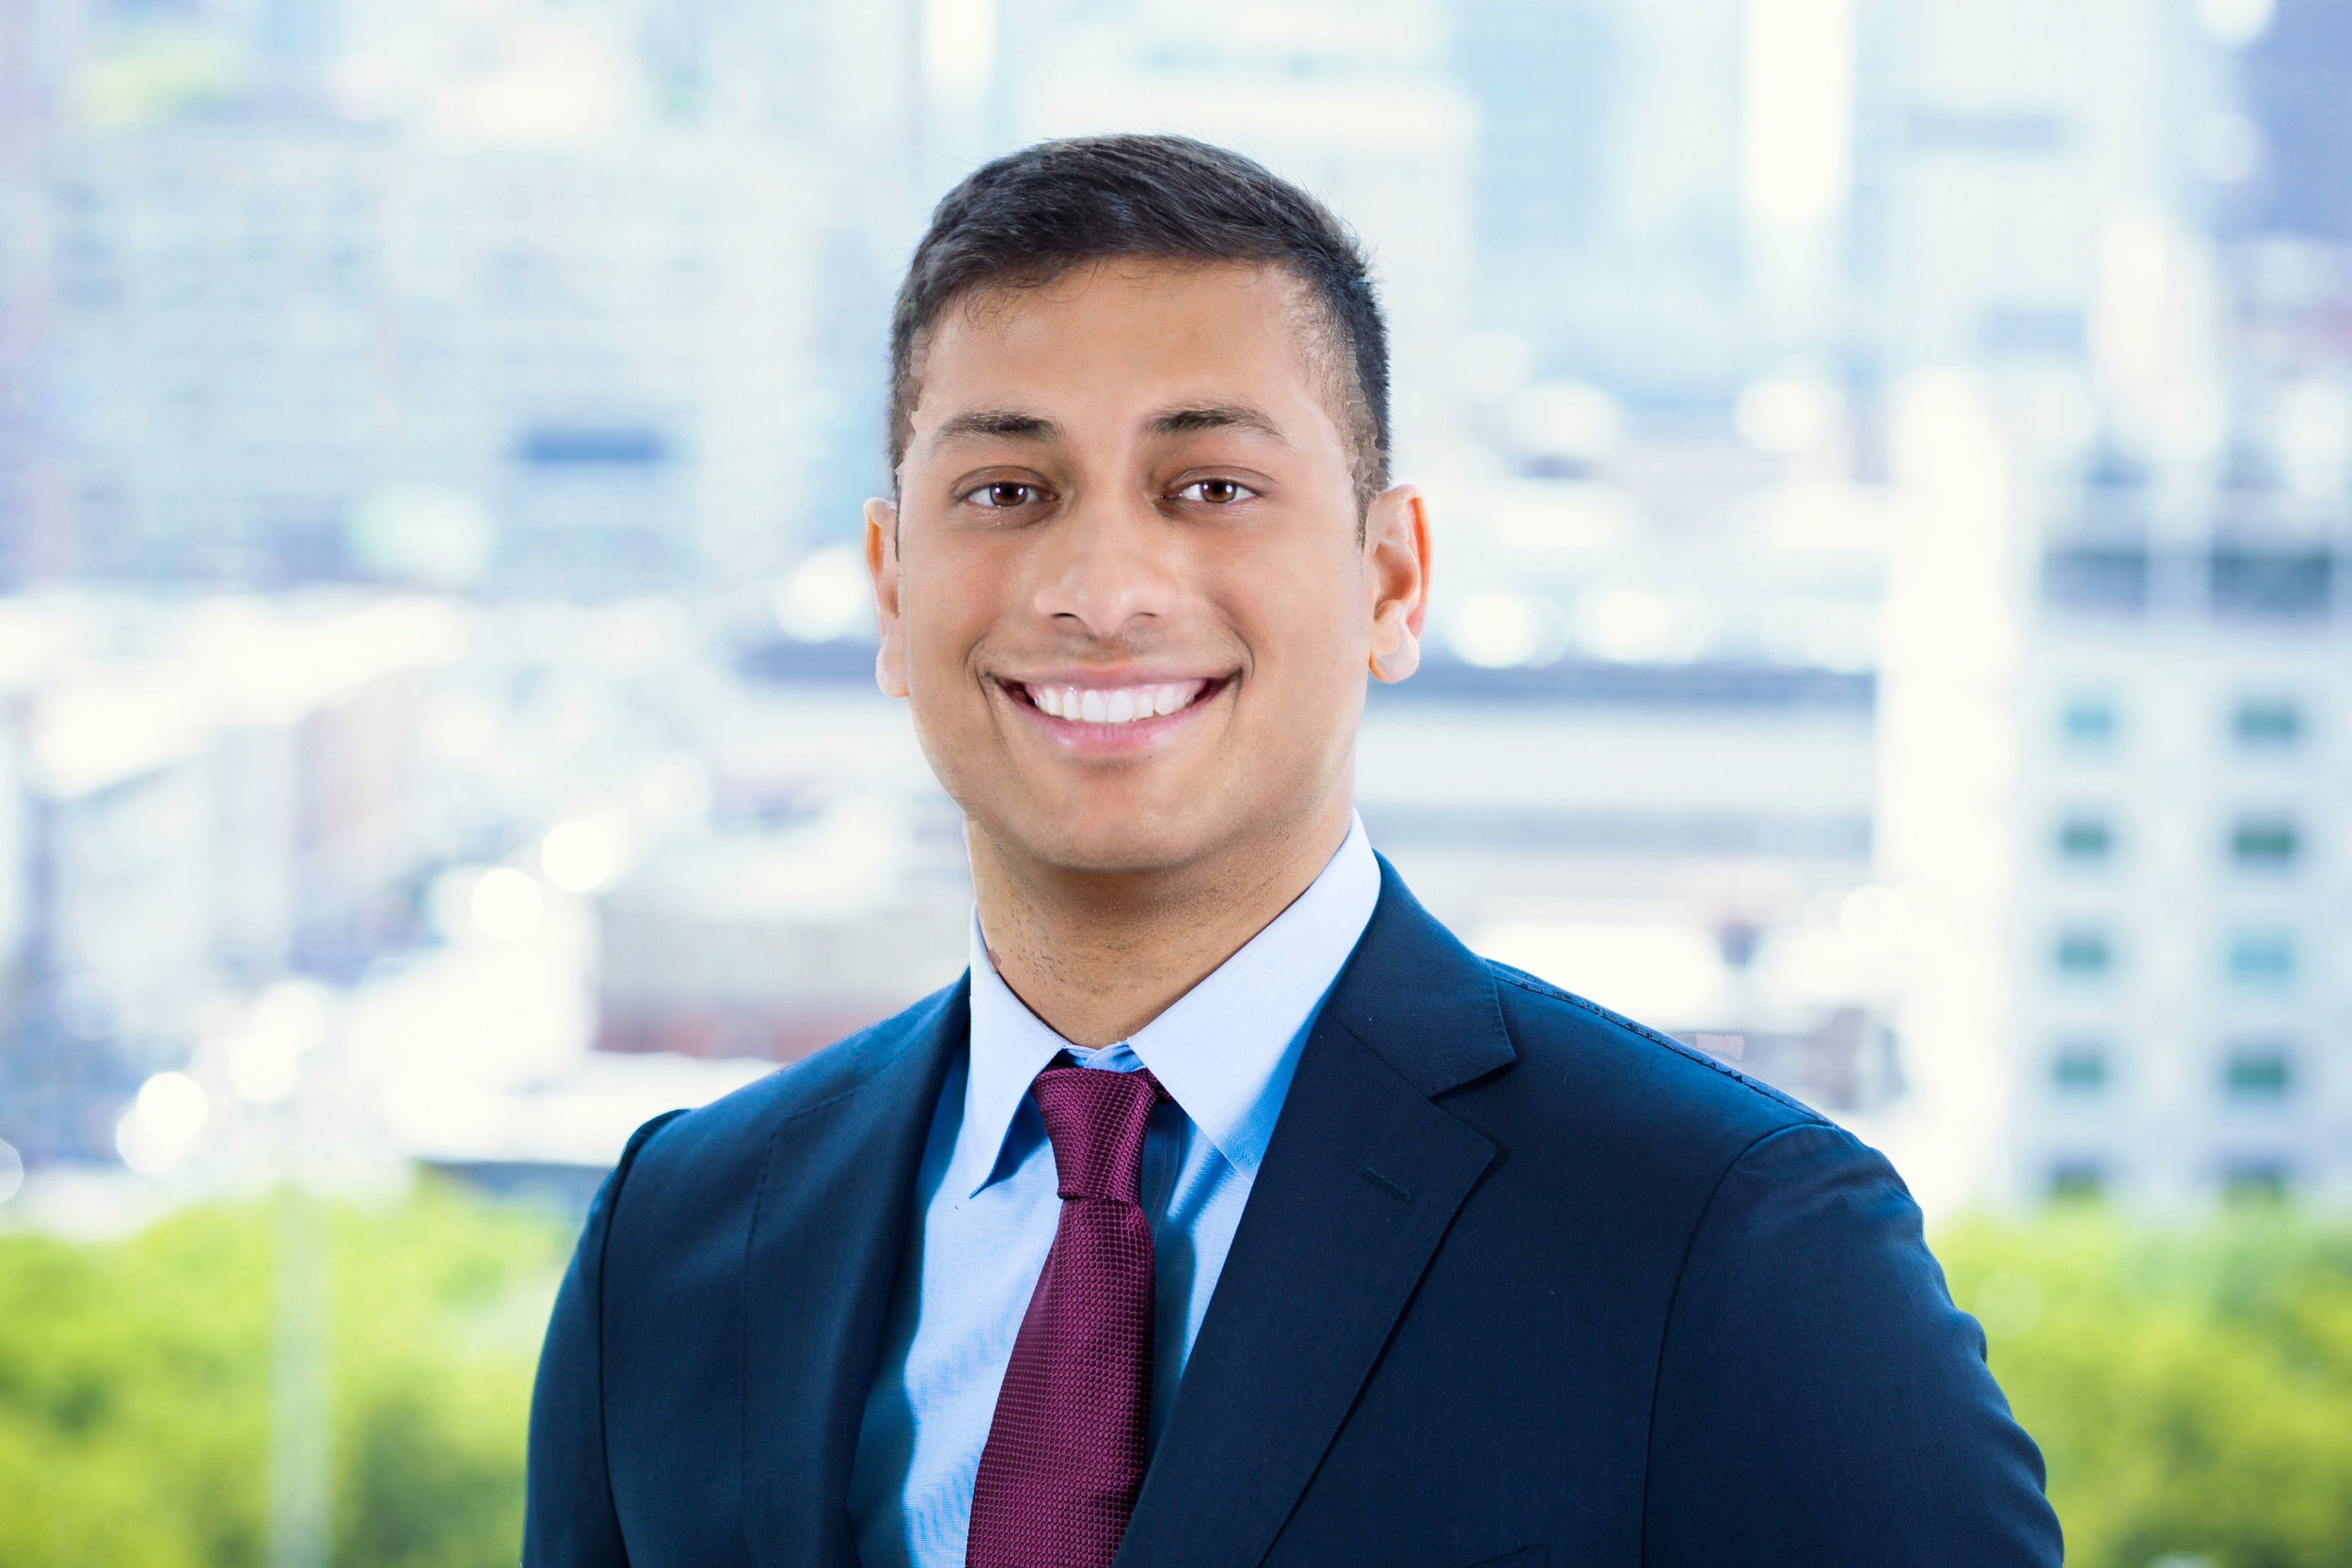 BRANDON BAKSH   Managing Director